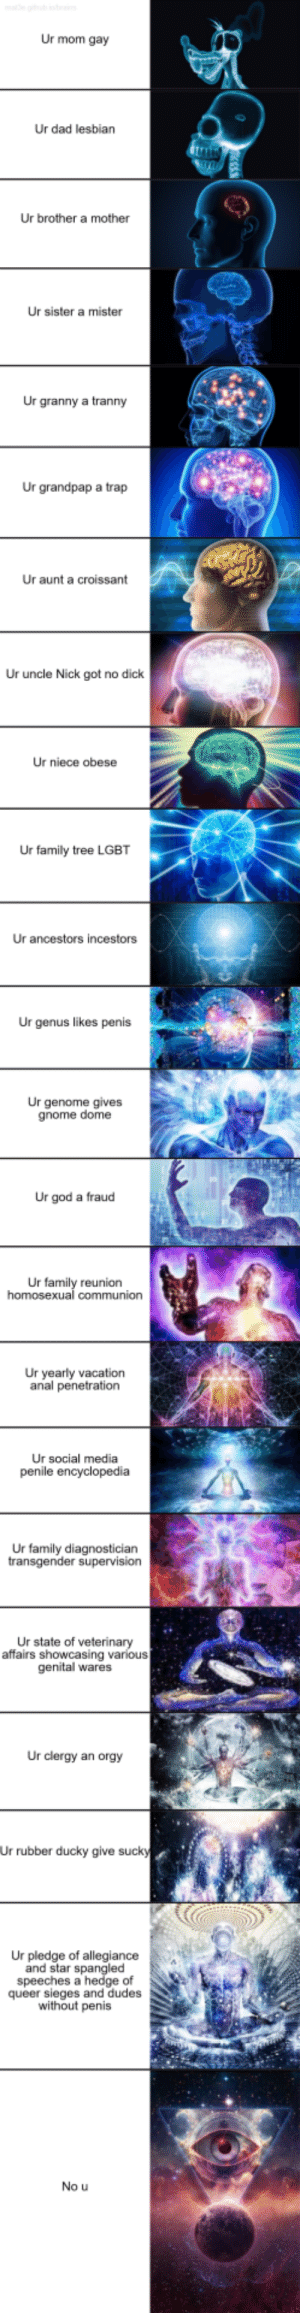 Now that its over, I compiled the entire ur mom gay chain: Ur mom gay  Ur dad lesbian  Ur brother a mother  Ur sister a mister  Ur granny a tranny  Ur grandpap a trap  Ur aunt a croissant  Ur uncle Nick got no dick  Ur niece obese  Ur family tree LGBT  Ur ancestors incestors  Ur genus likes penis  Ur genome gives  gnome dome  Ur god a fraud  Ur family reunion  Ur yearly vacation  anal penetration  Ur social media  Ur family diagnosticiarn  Ur state of veterinary  affairs showcasing various  genital wares  Ur clergy an orgy  Ur rubber ducky give suck  Ur pledge of allegiance  and star spangle  speeches a hedge of  queer sieges and dudes  without penis  No u Now that its over, I compiled the entire ur mom gay chain